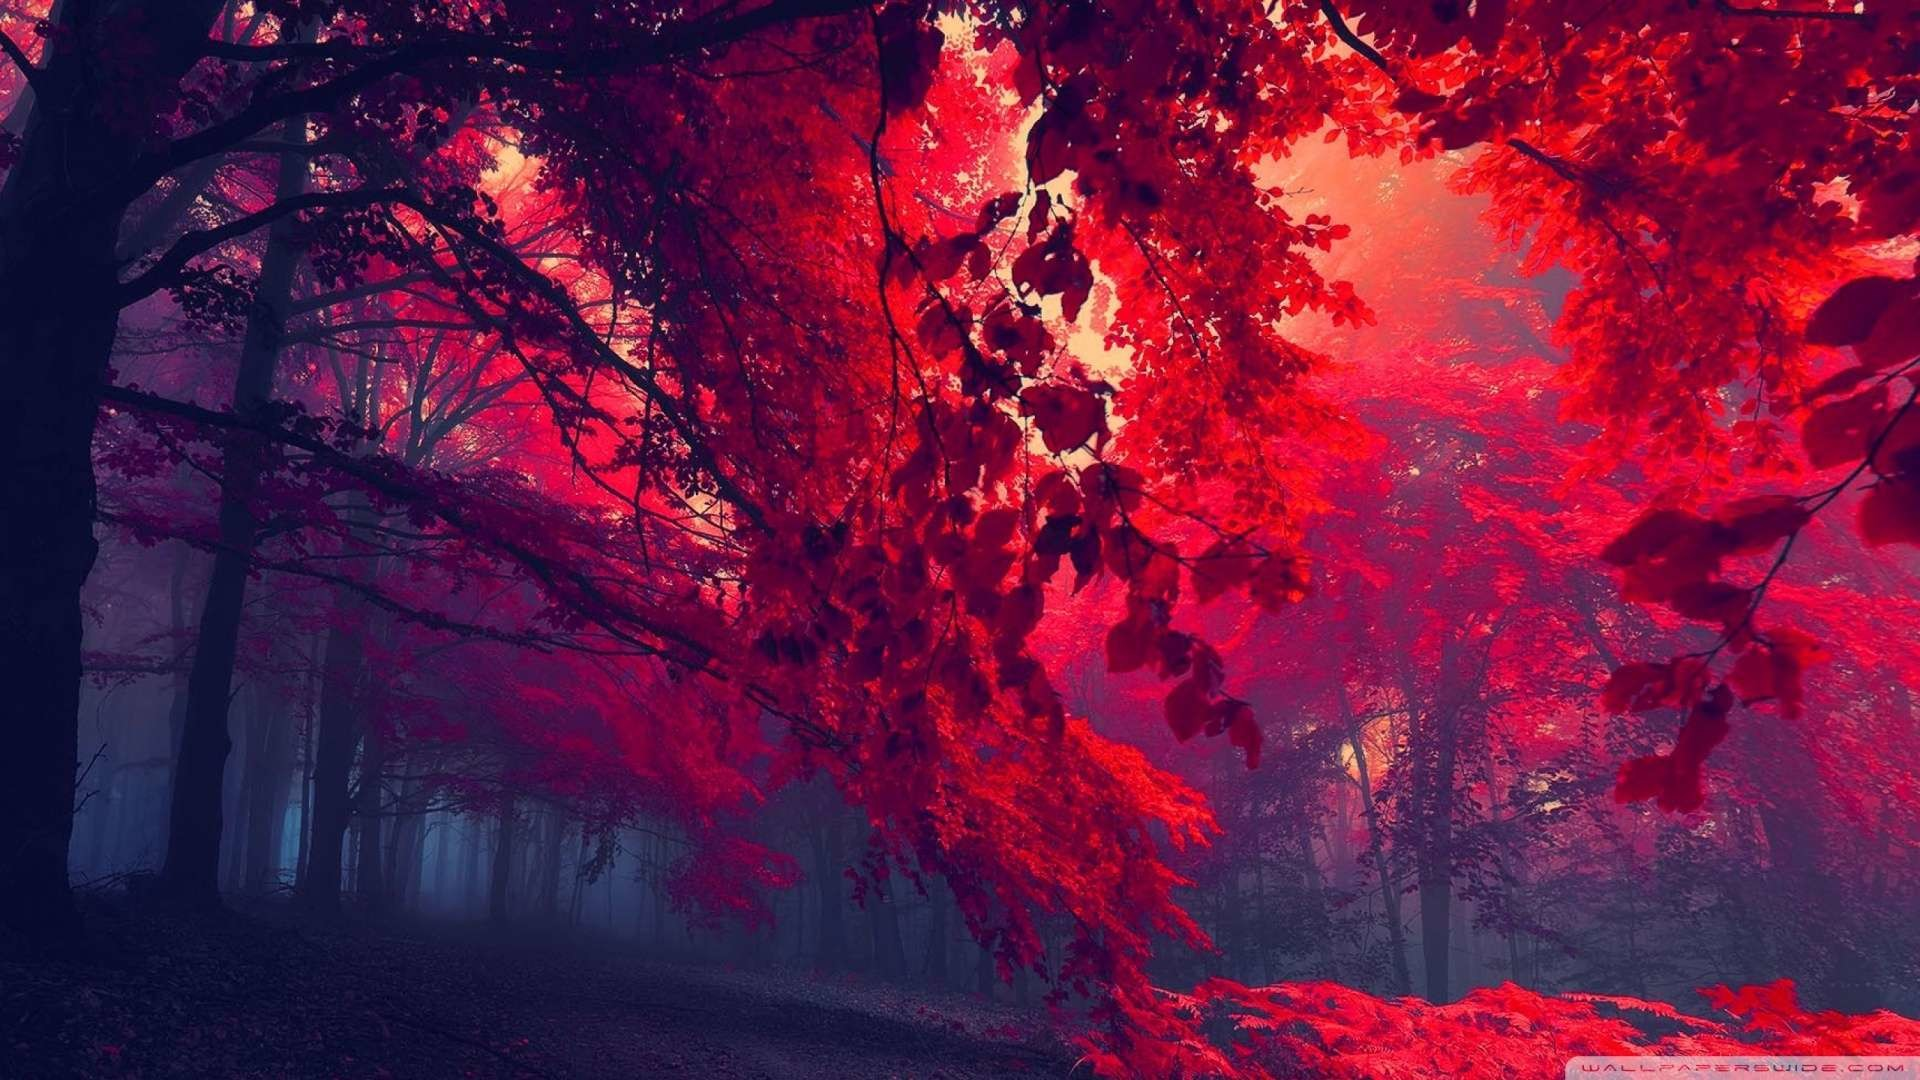 Wallpaper: Red Forest 4 Wallpaper 1080p HD. Upload at February 25 .